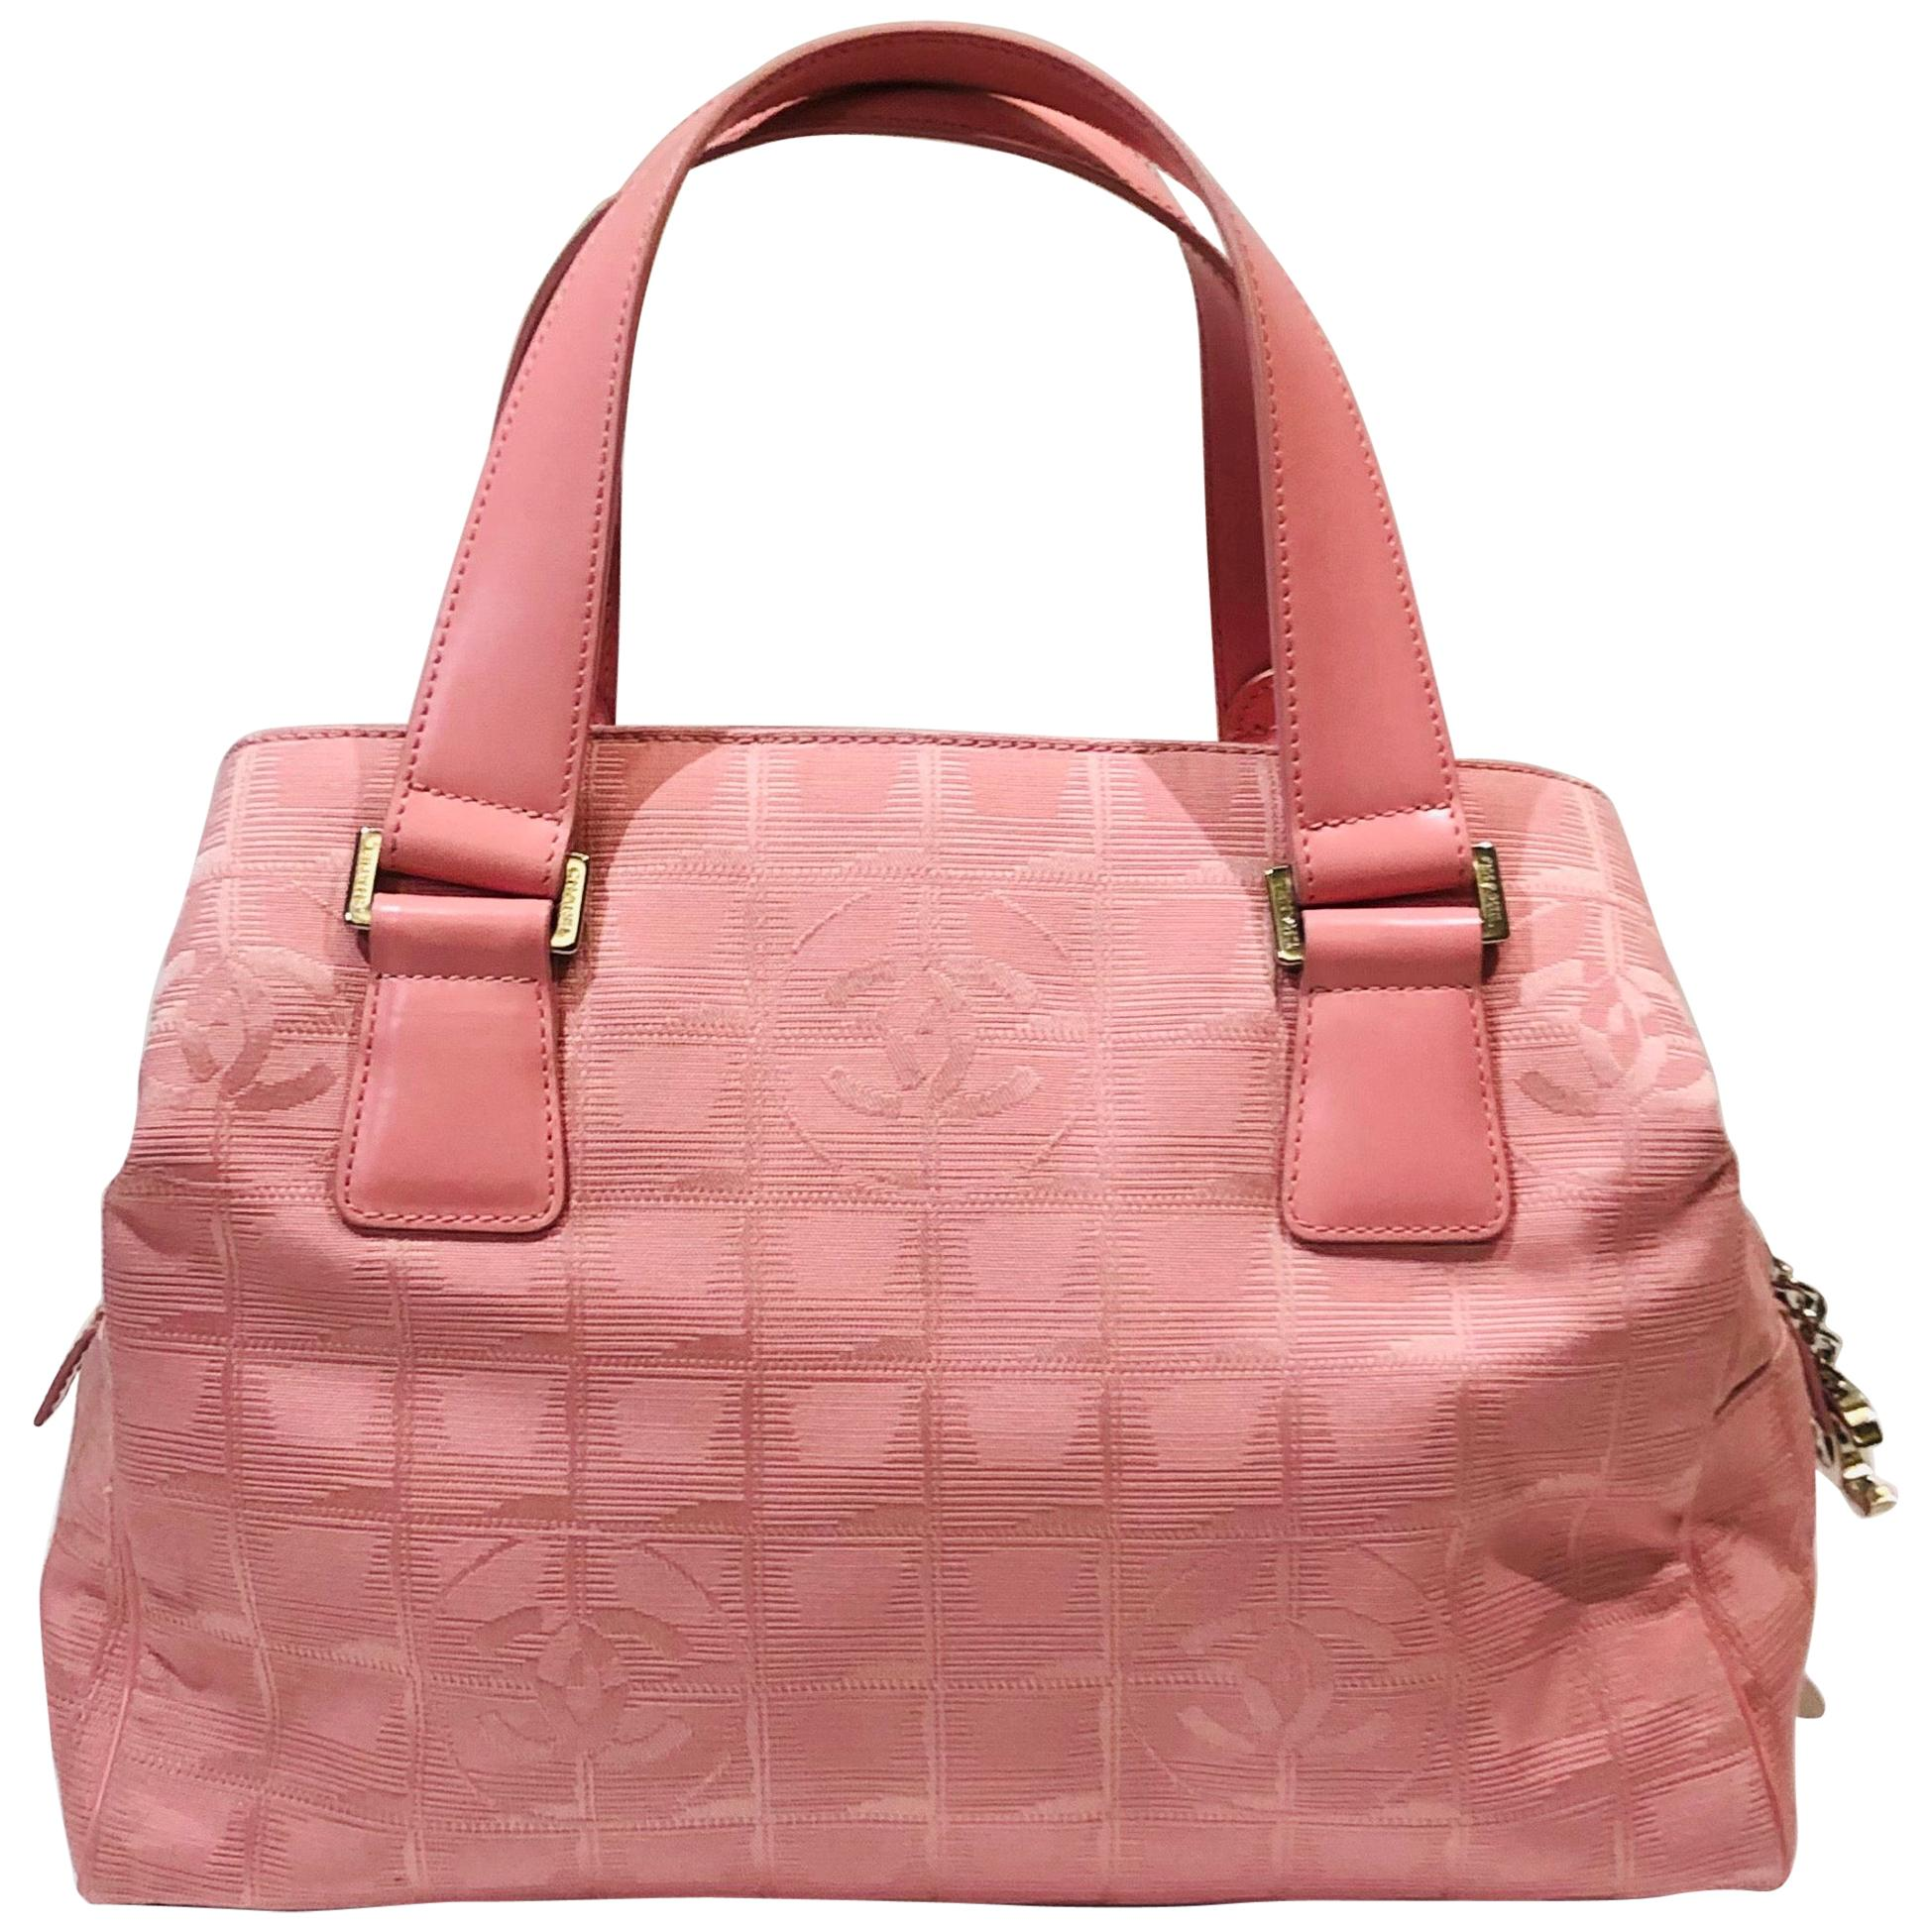 Chanel Pink Boston Style Handbag.